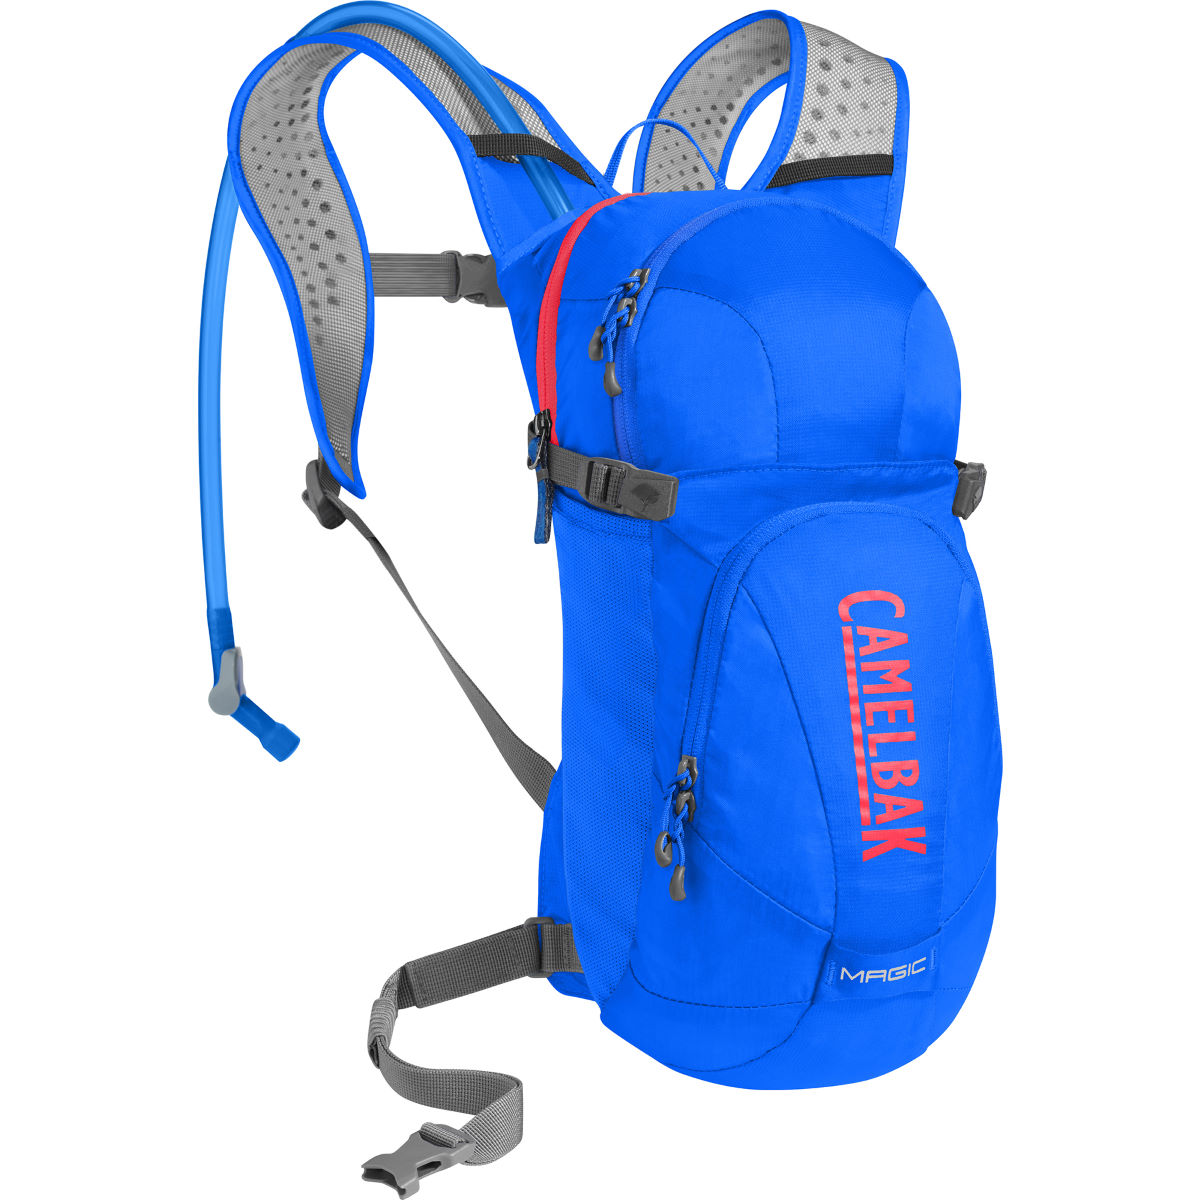 Sac d'hydratation Femme Camelbak MAGIC - One Size Carve Blue/Fiery Cha Sacs d'hydratation